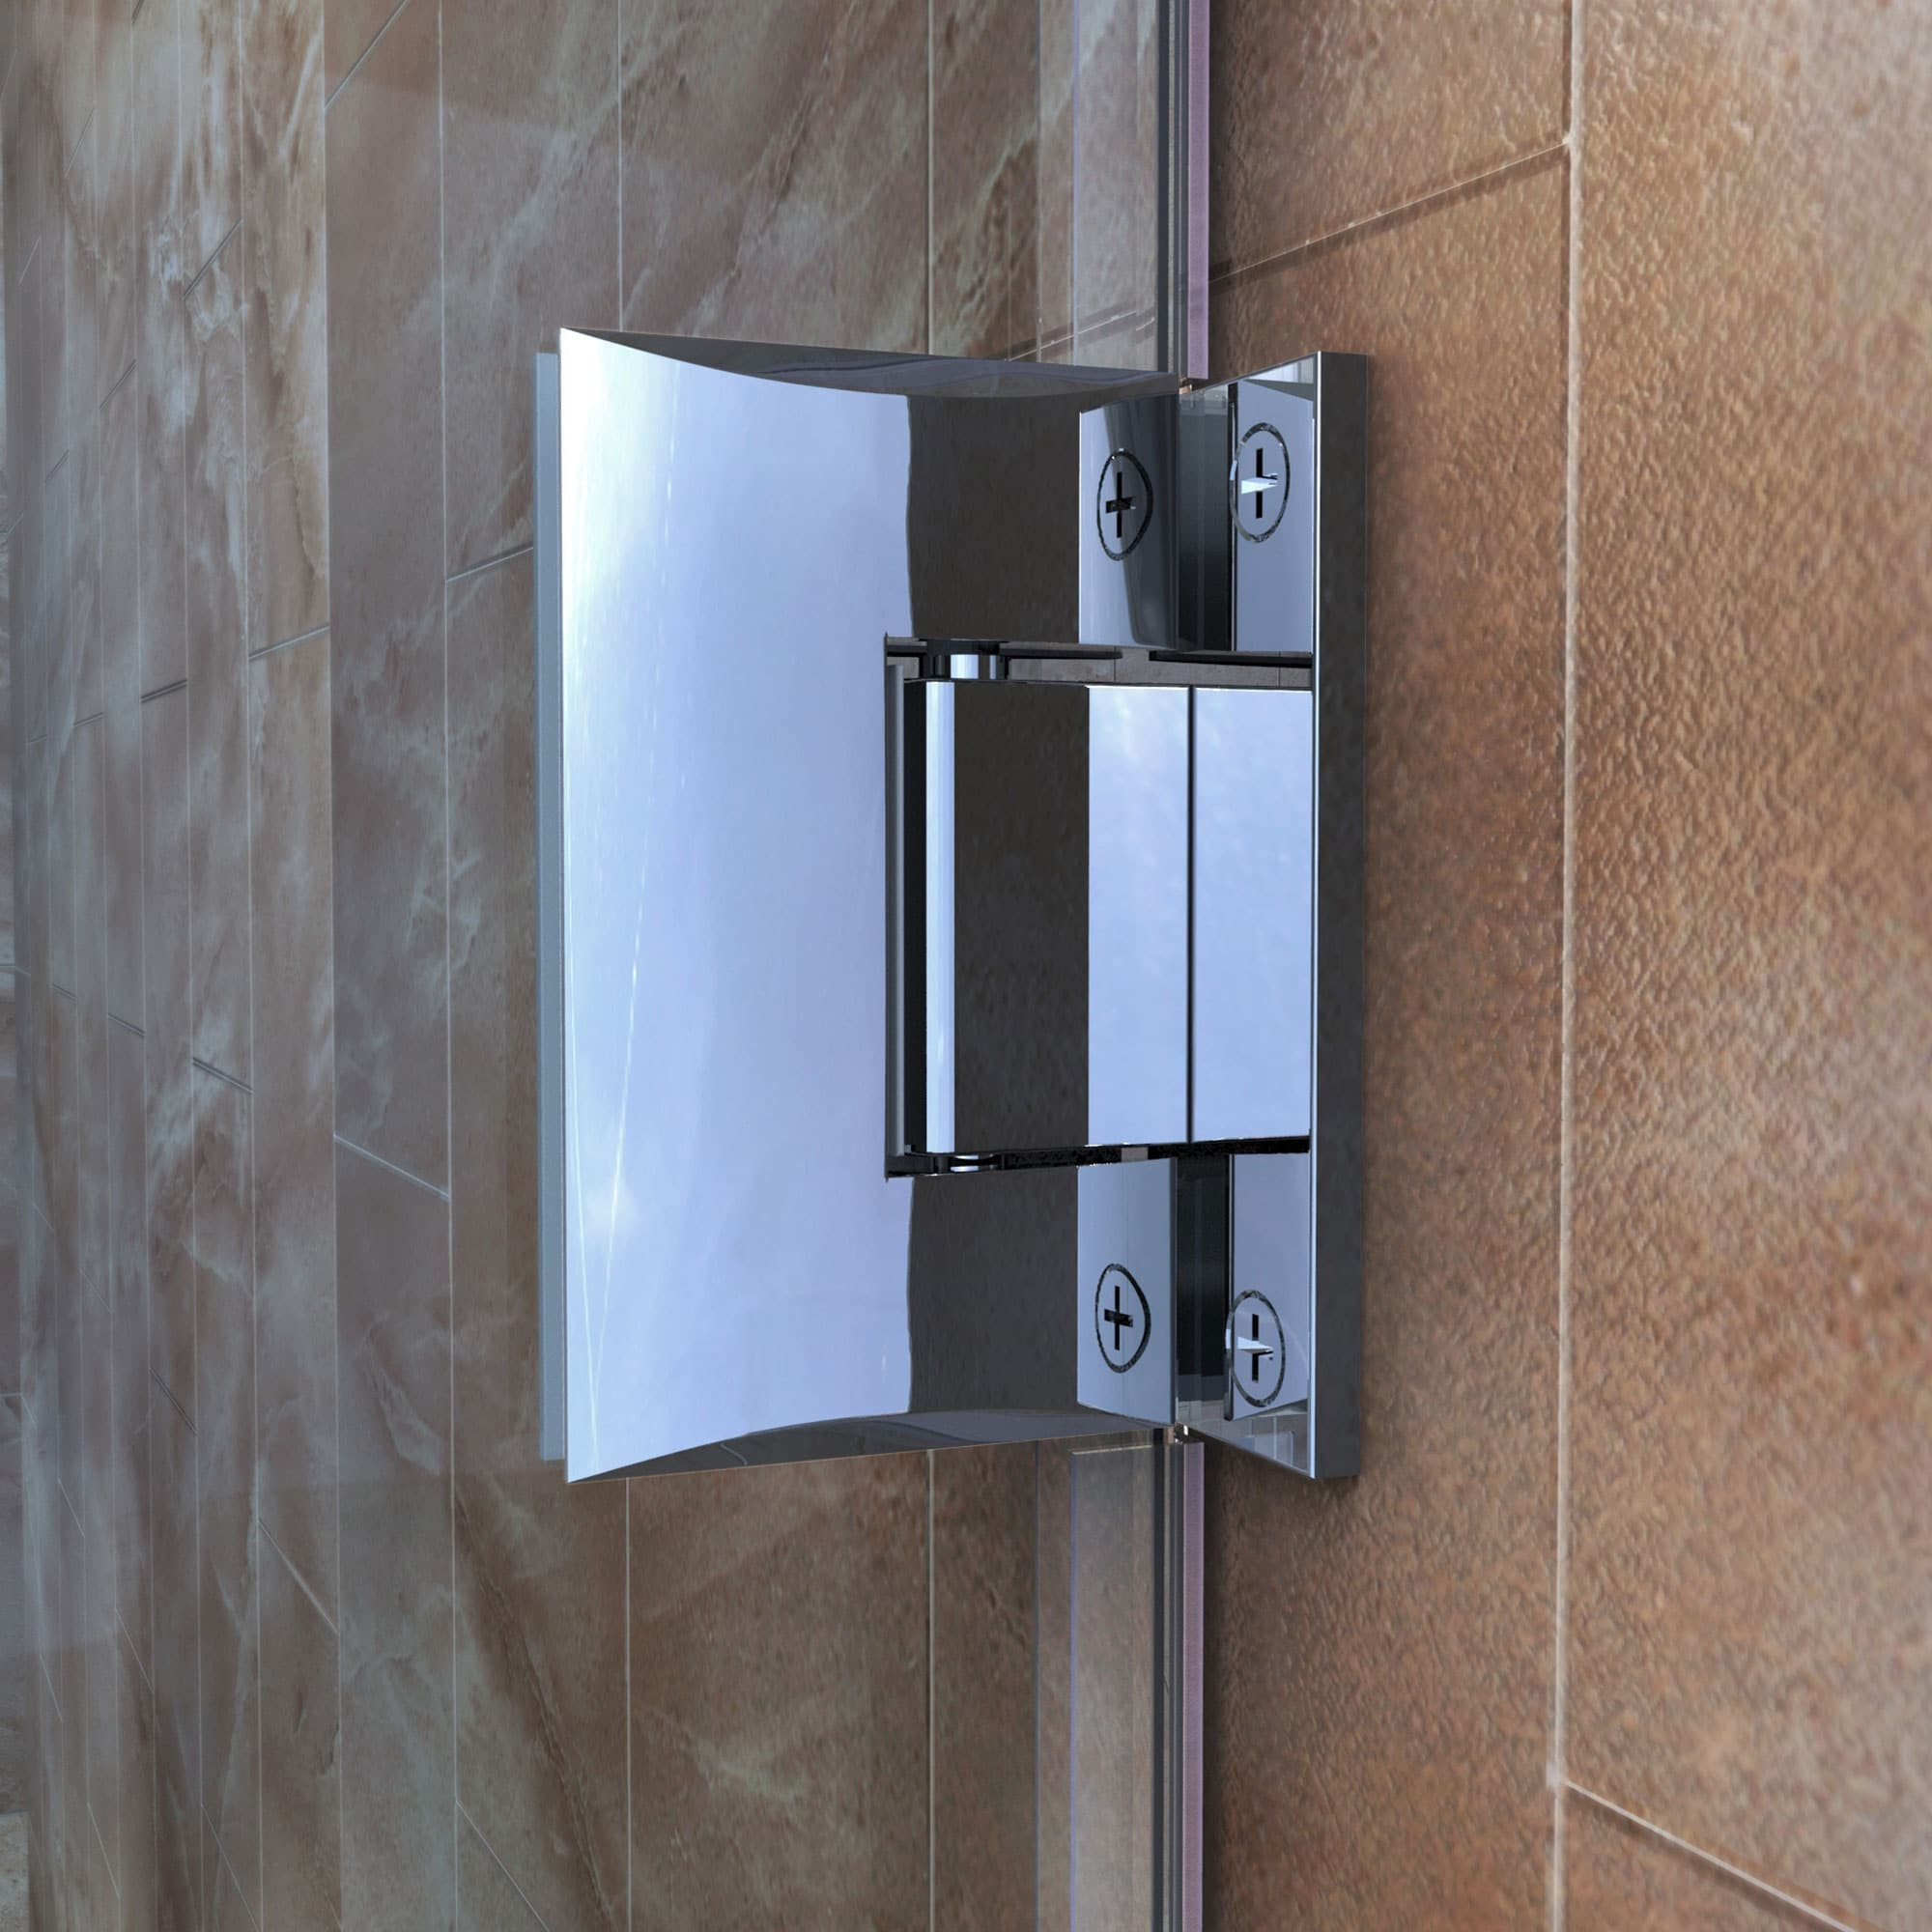 Dreamline Unidoor Plus 60 60 1 2 In W X 72 In H Frameless Hinged Shower Door 60 60 5 W Overstock 9126334